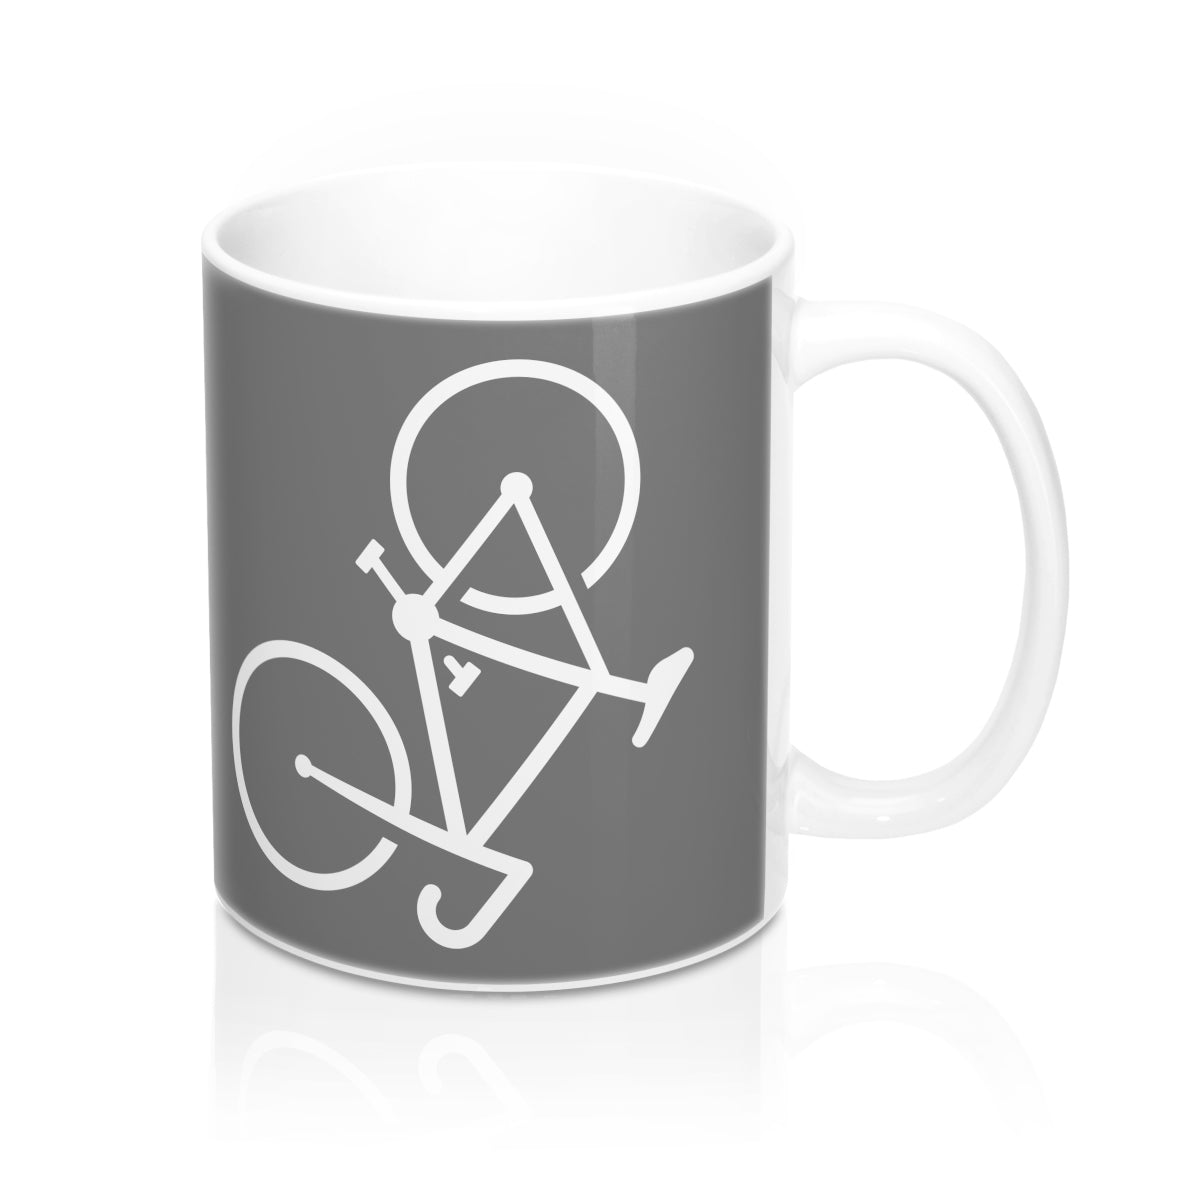 Uphill Industries Coffee Ride Repeat x Bonk Bike Mug - Uphill Industries Cycling Apparel